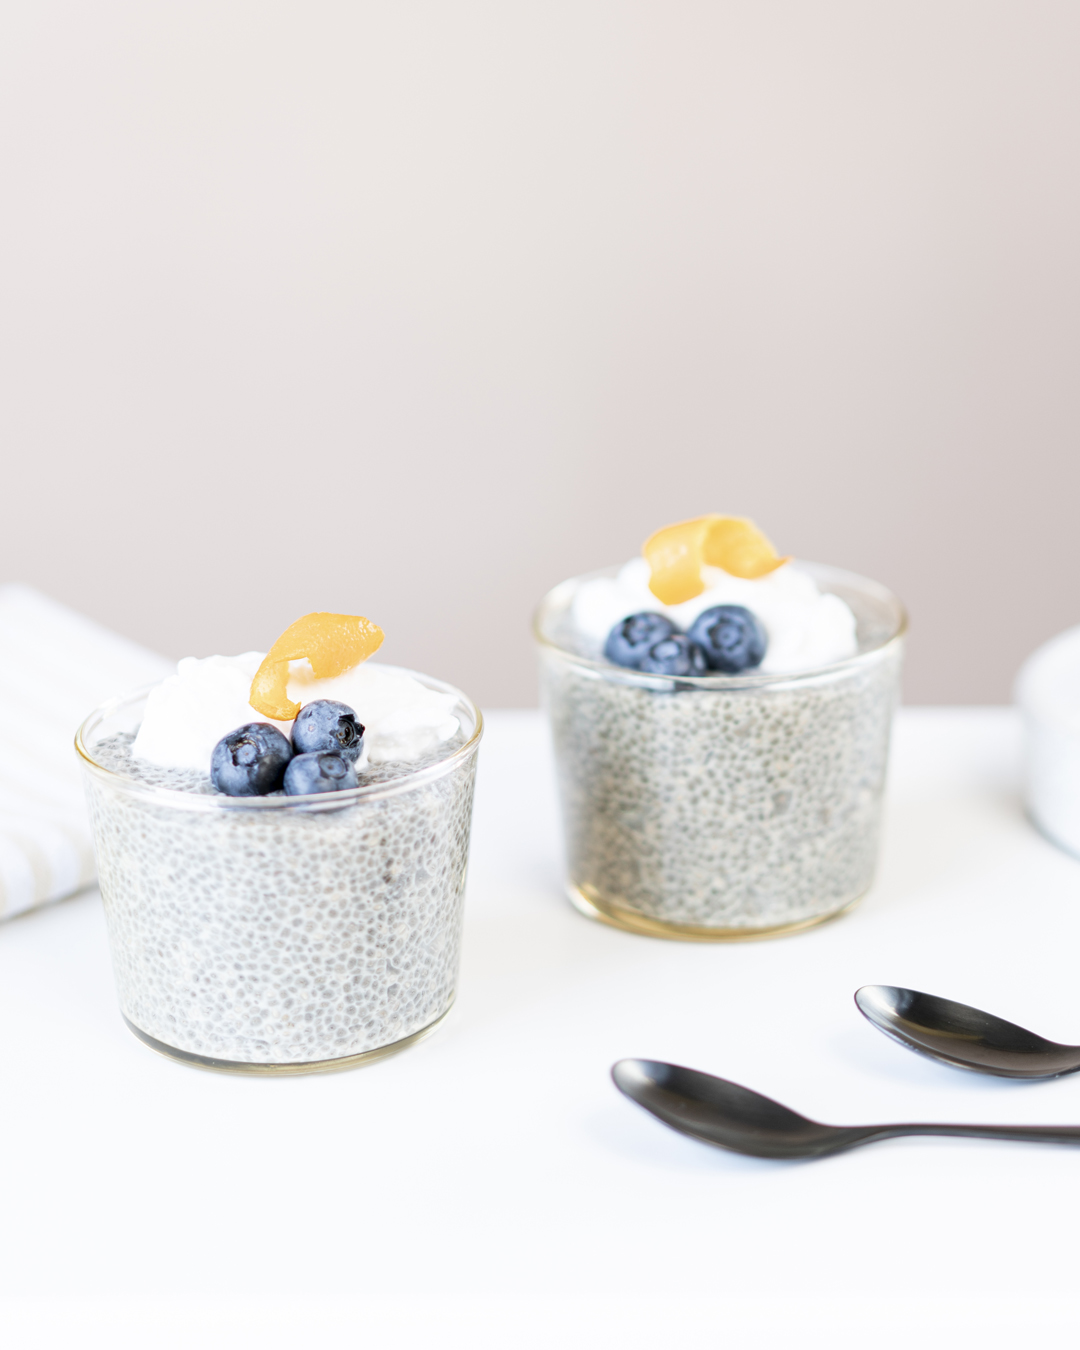 Knotably Creative House Chia Seed Pudding Recipe 05.jpg